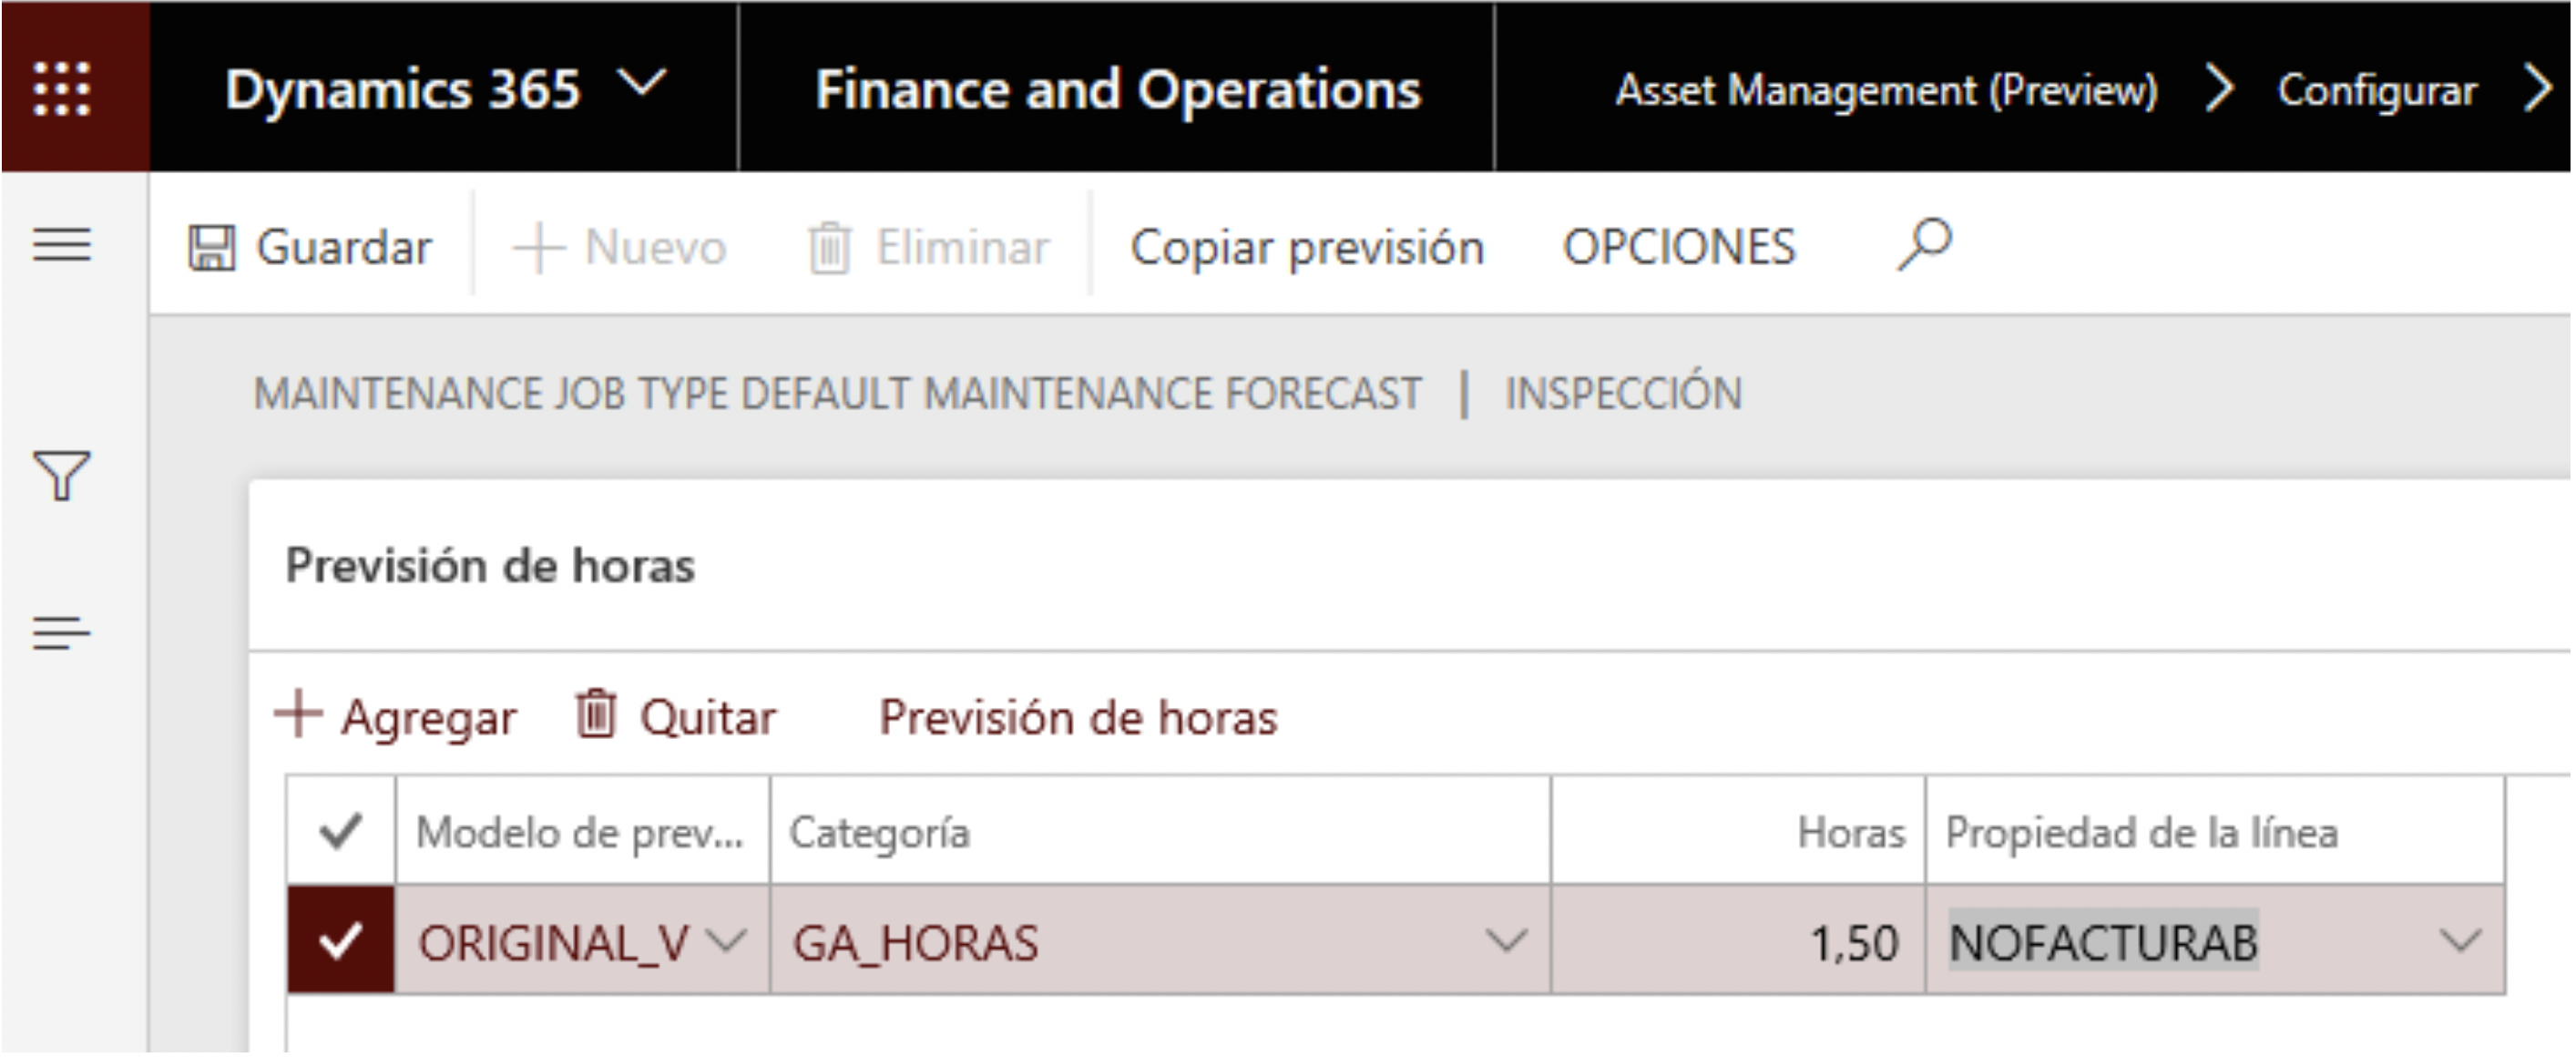 ERD - Dynamics365 Finance Operations - Gestión Activos ERP - 2.10